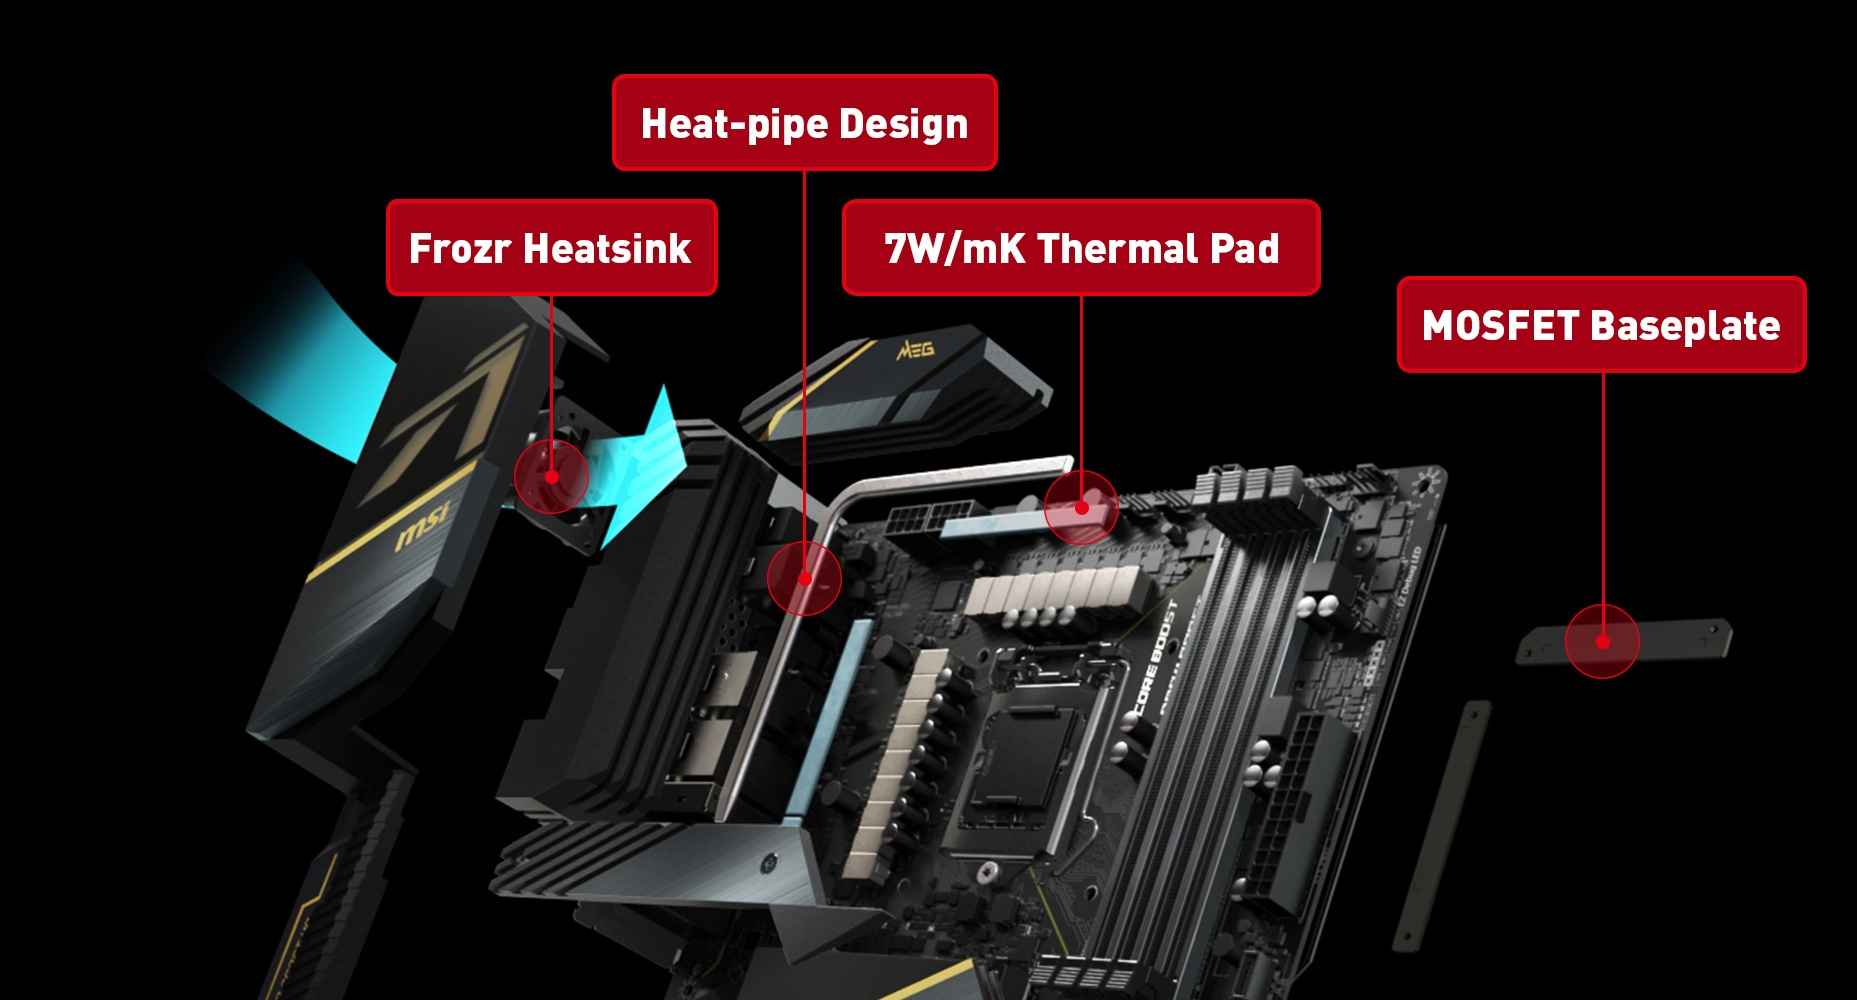 MSI MEG Z490 ACE THERMAL SOLUTION